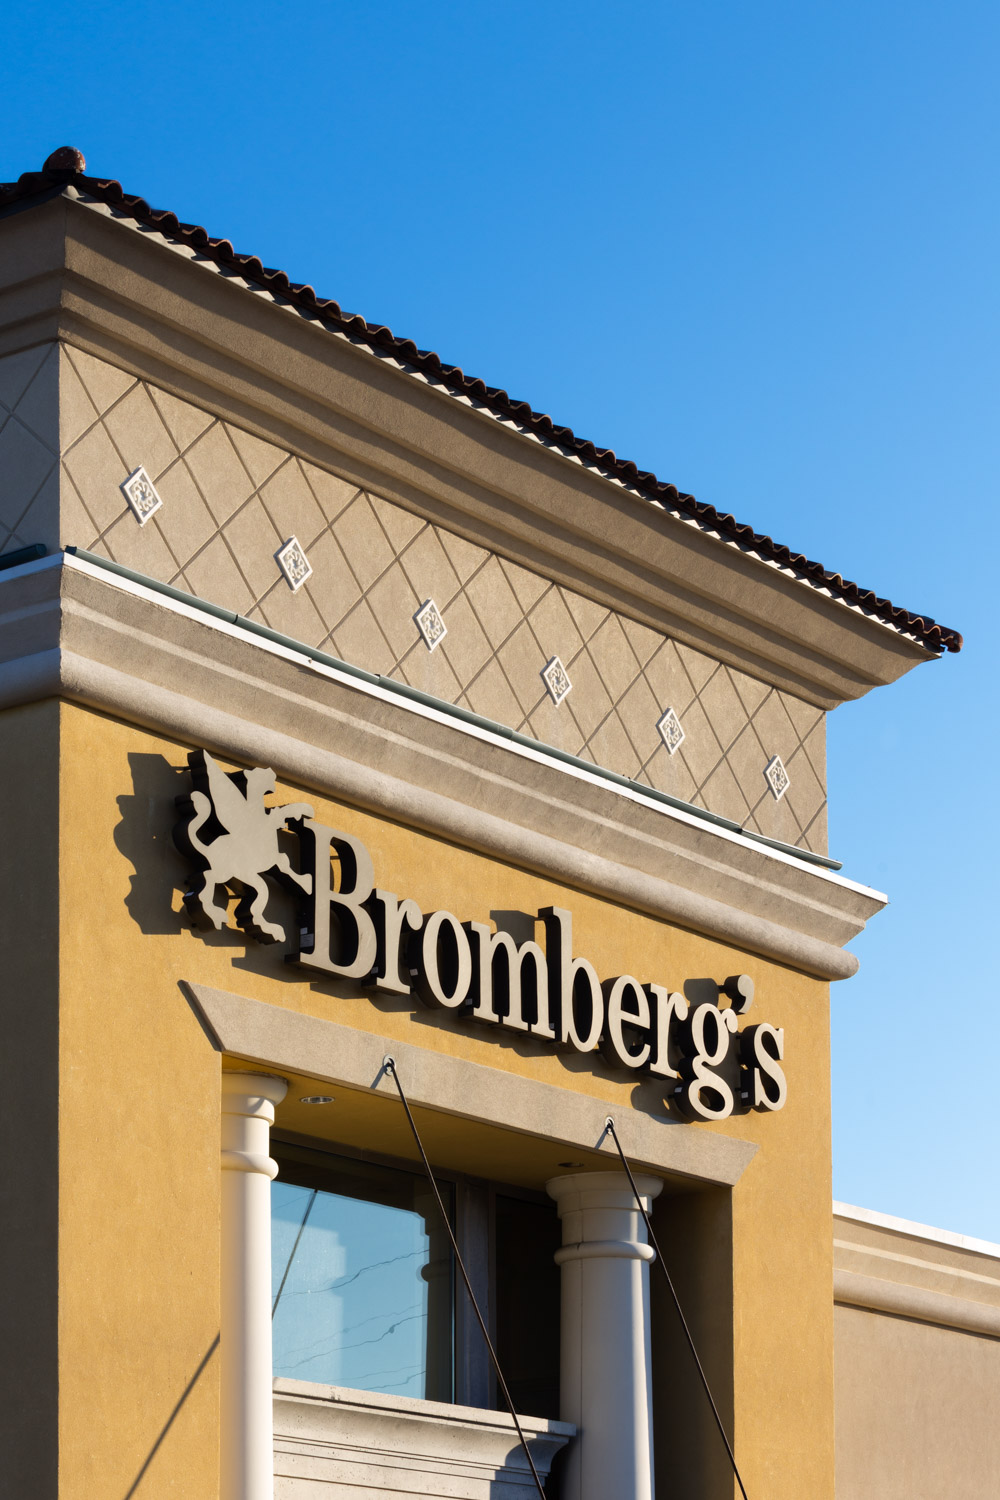 Brombergs - Birmingham AL Jewelry Store - Google Virtual Tour2523.jpg